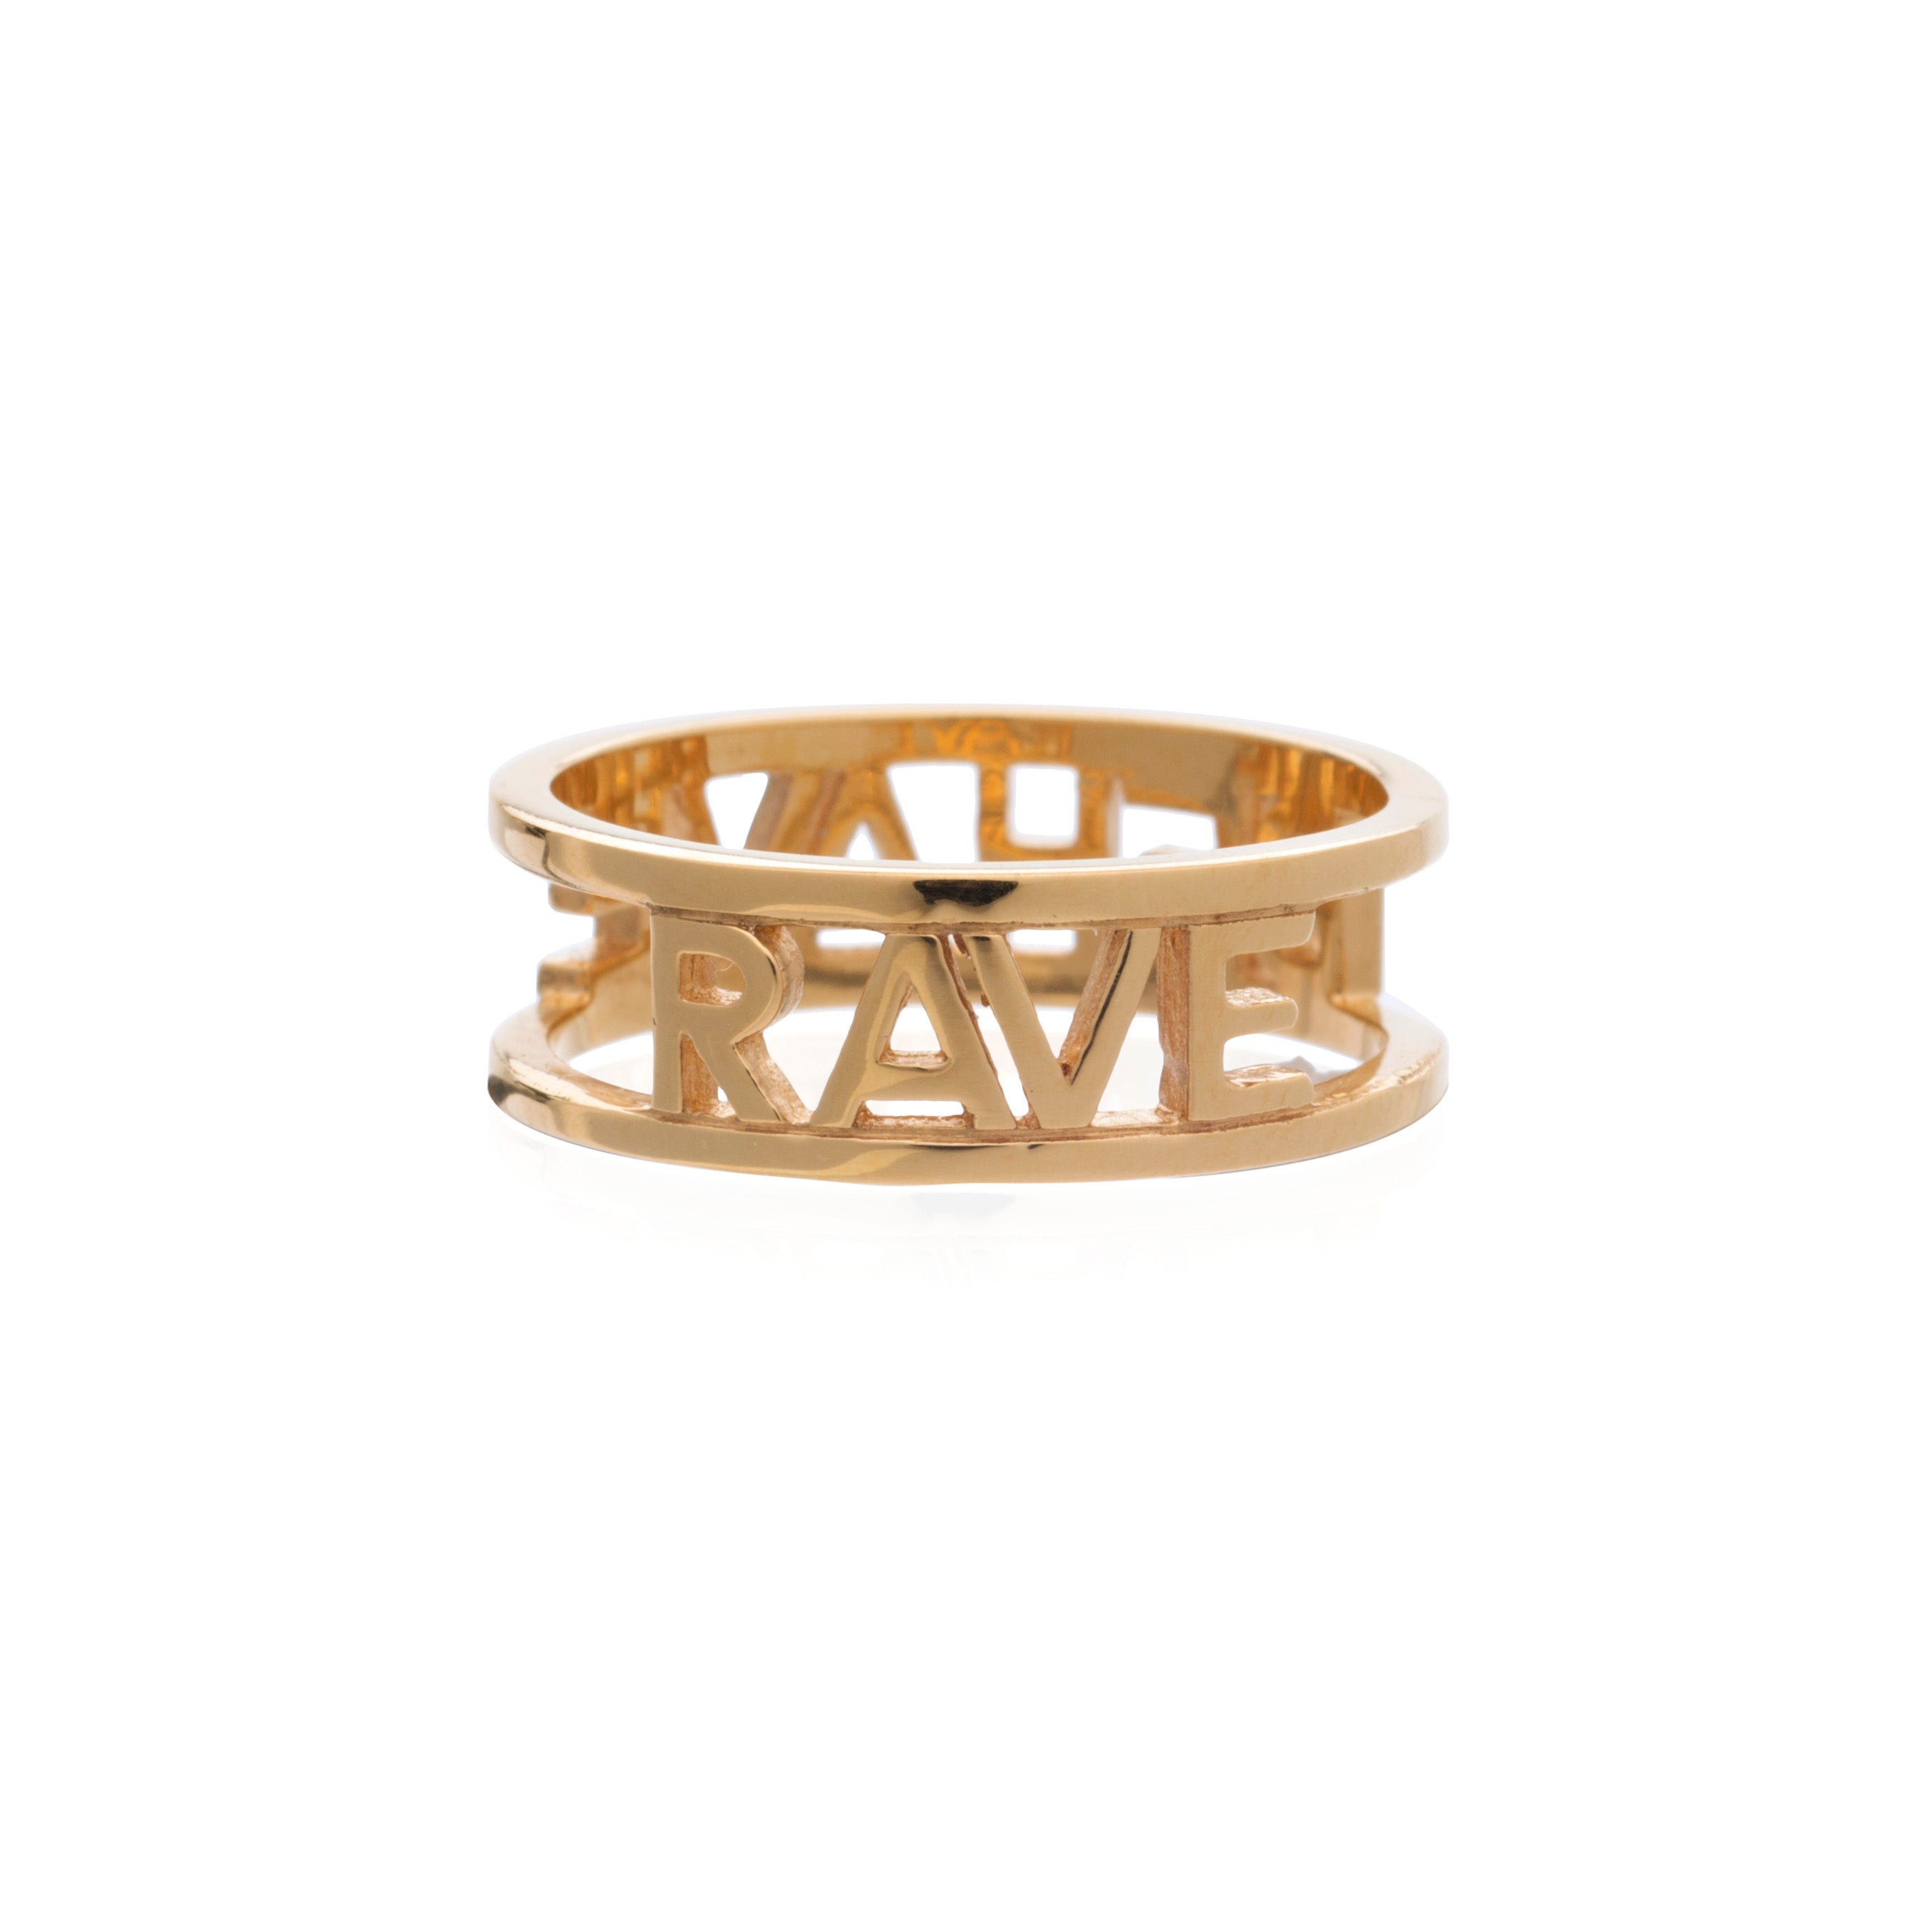 Rave Behave Ring